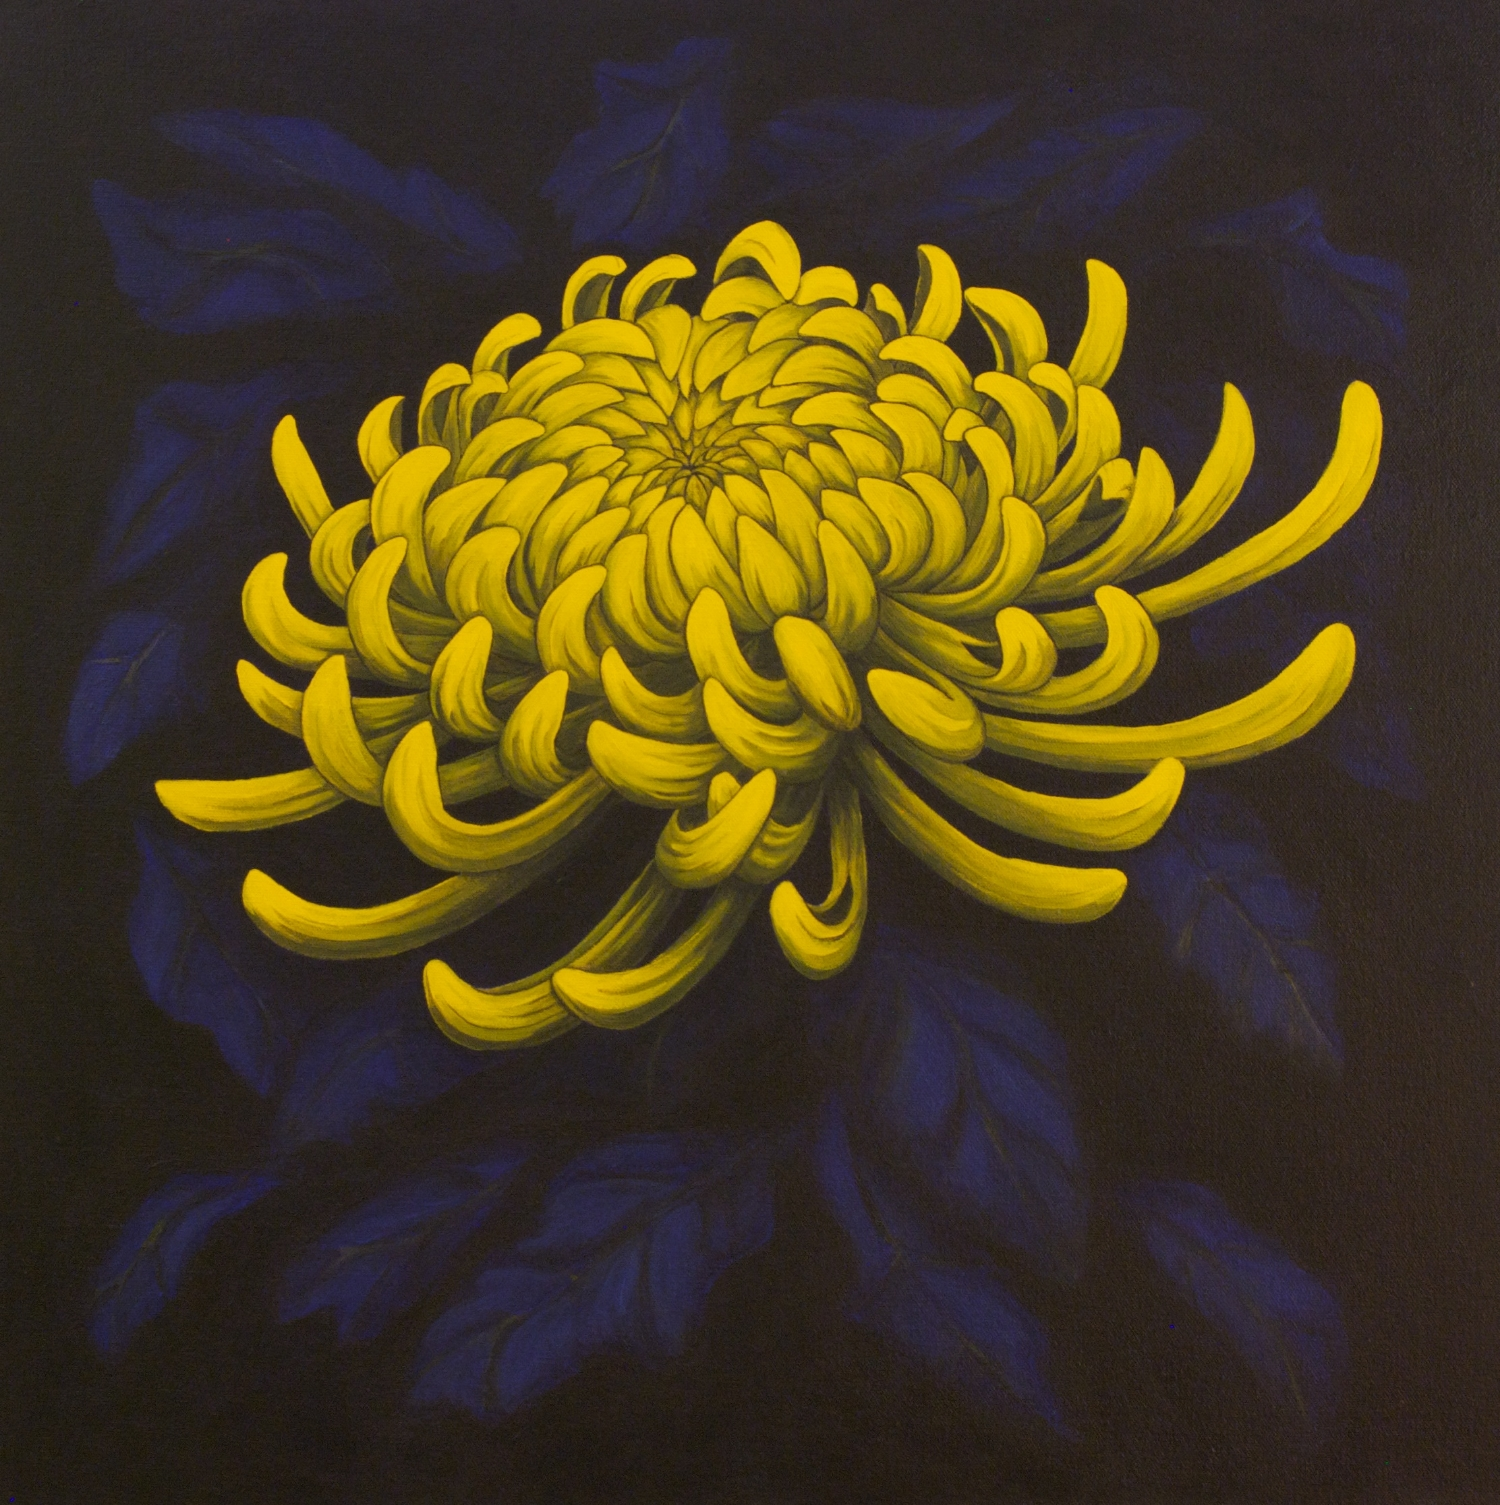 """Achates; Sea Anemone Series   This chrysanthemum series is named for its effect- the luminous flowers seem to echo the sea anemone glowing in the dark waters of the sea. This mum is named after the species Antholoba achates, which is found in the South East Pacific and around the Atlantic coasts of South America. The Antholoba achates is known for its numerous, dense, short tentacles, much like this yellow spider mum's petals.  acrylic painting on 24"""" x 24"""" (x1.5"""") gallery wrapped canvas  $600.00"""